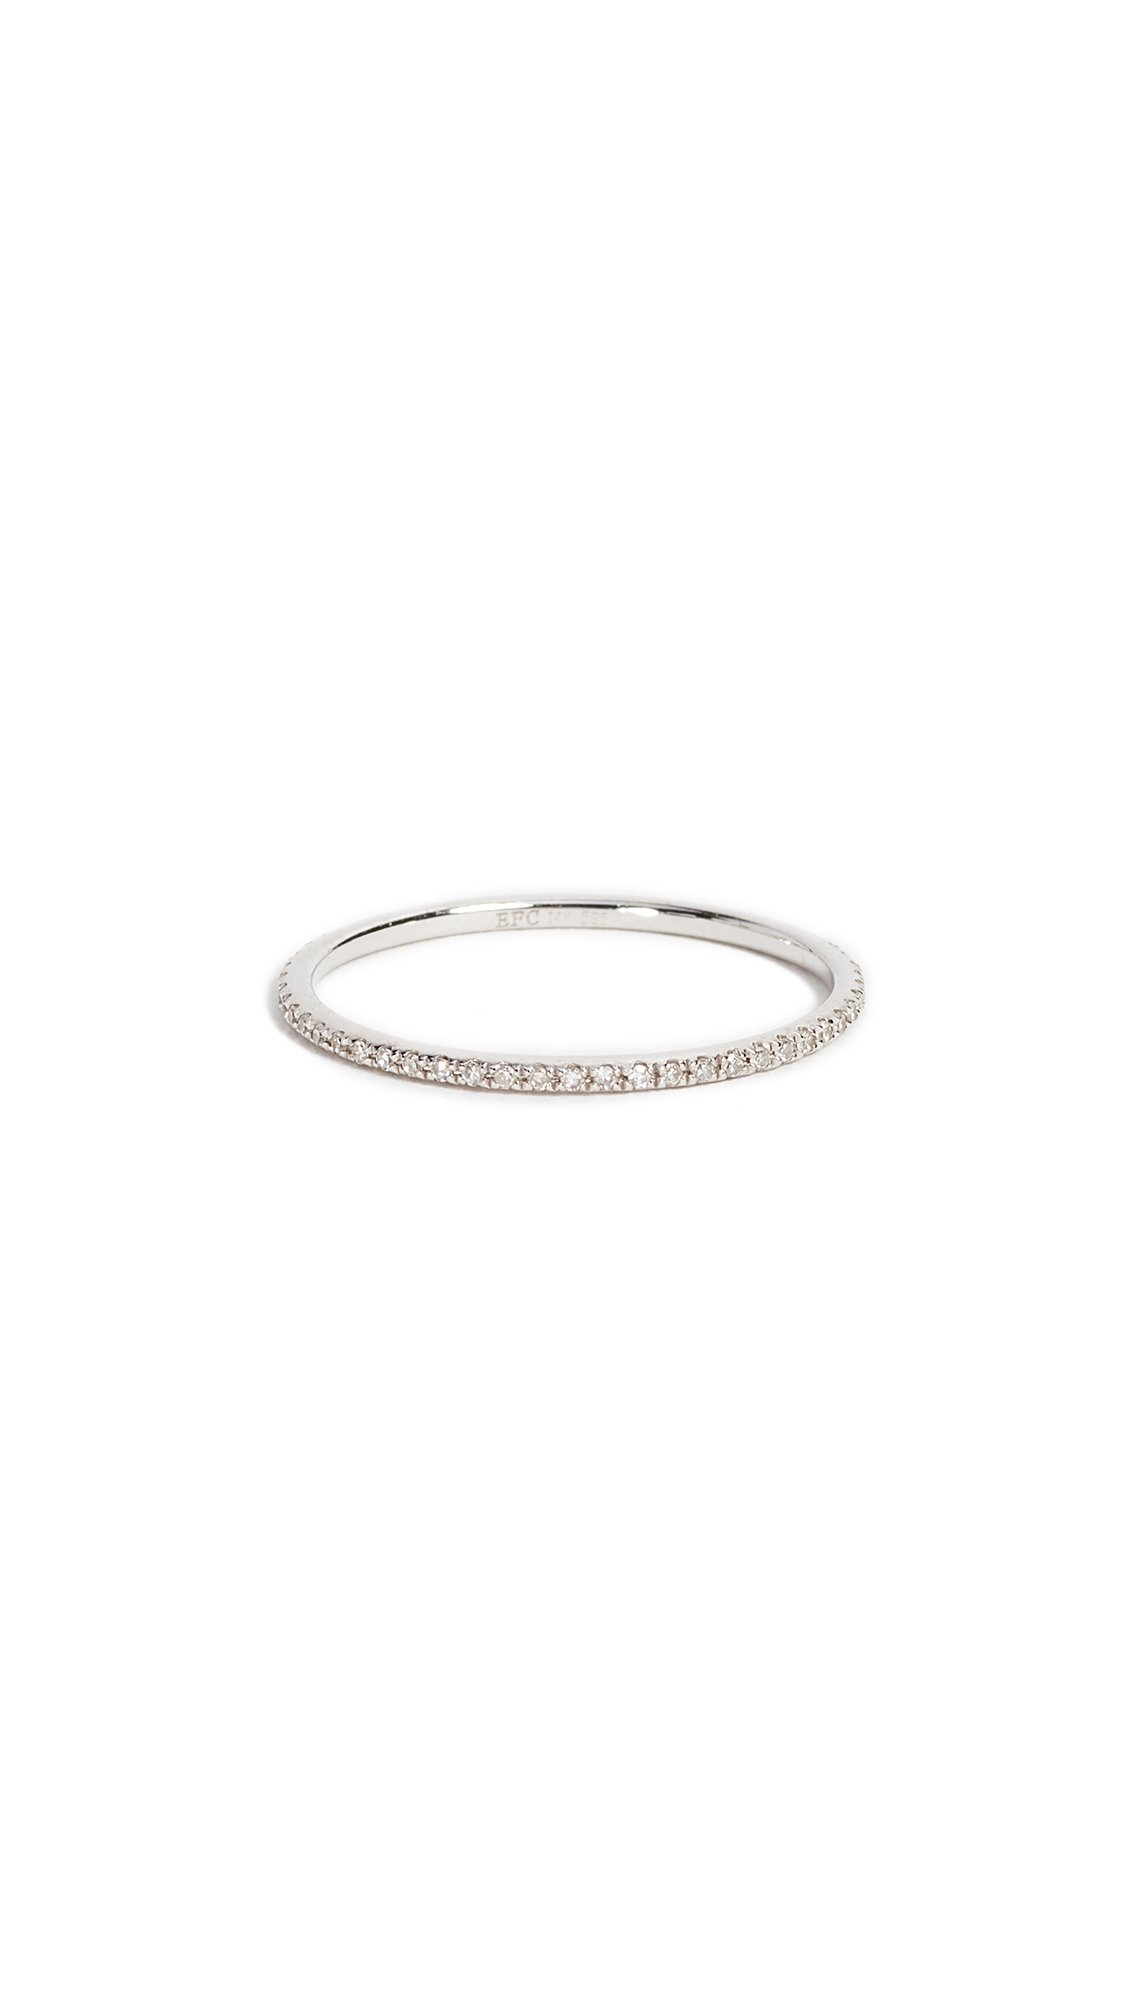 EF Collection Women's Diamond Eternity Stack Ring, White Gold/Clear, 6 by EF Collection